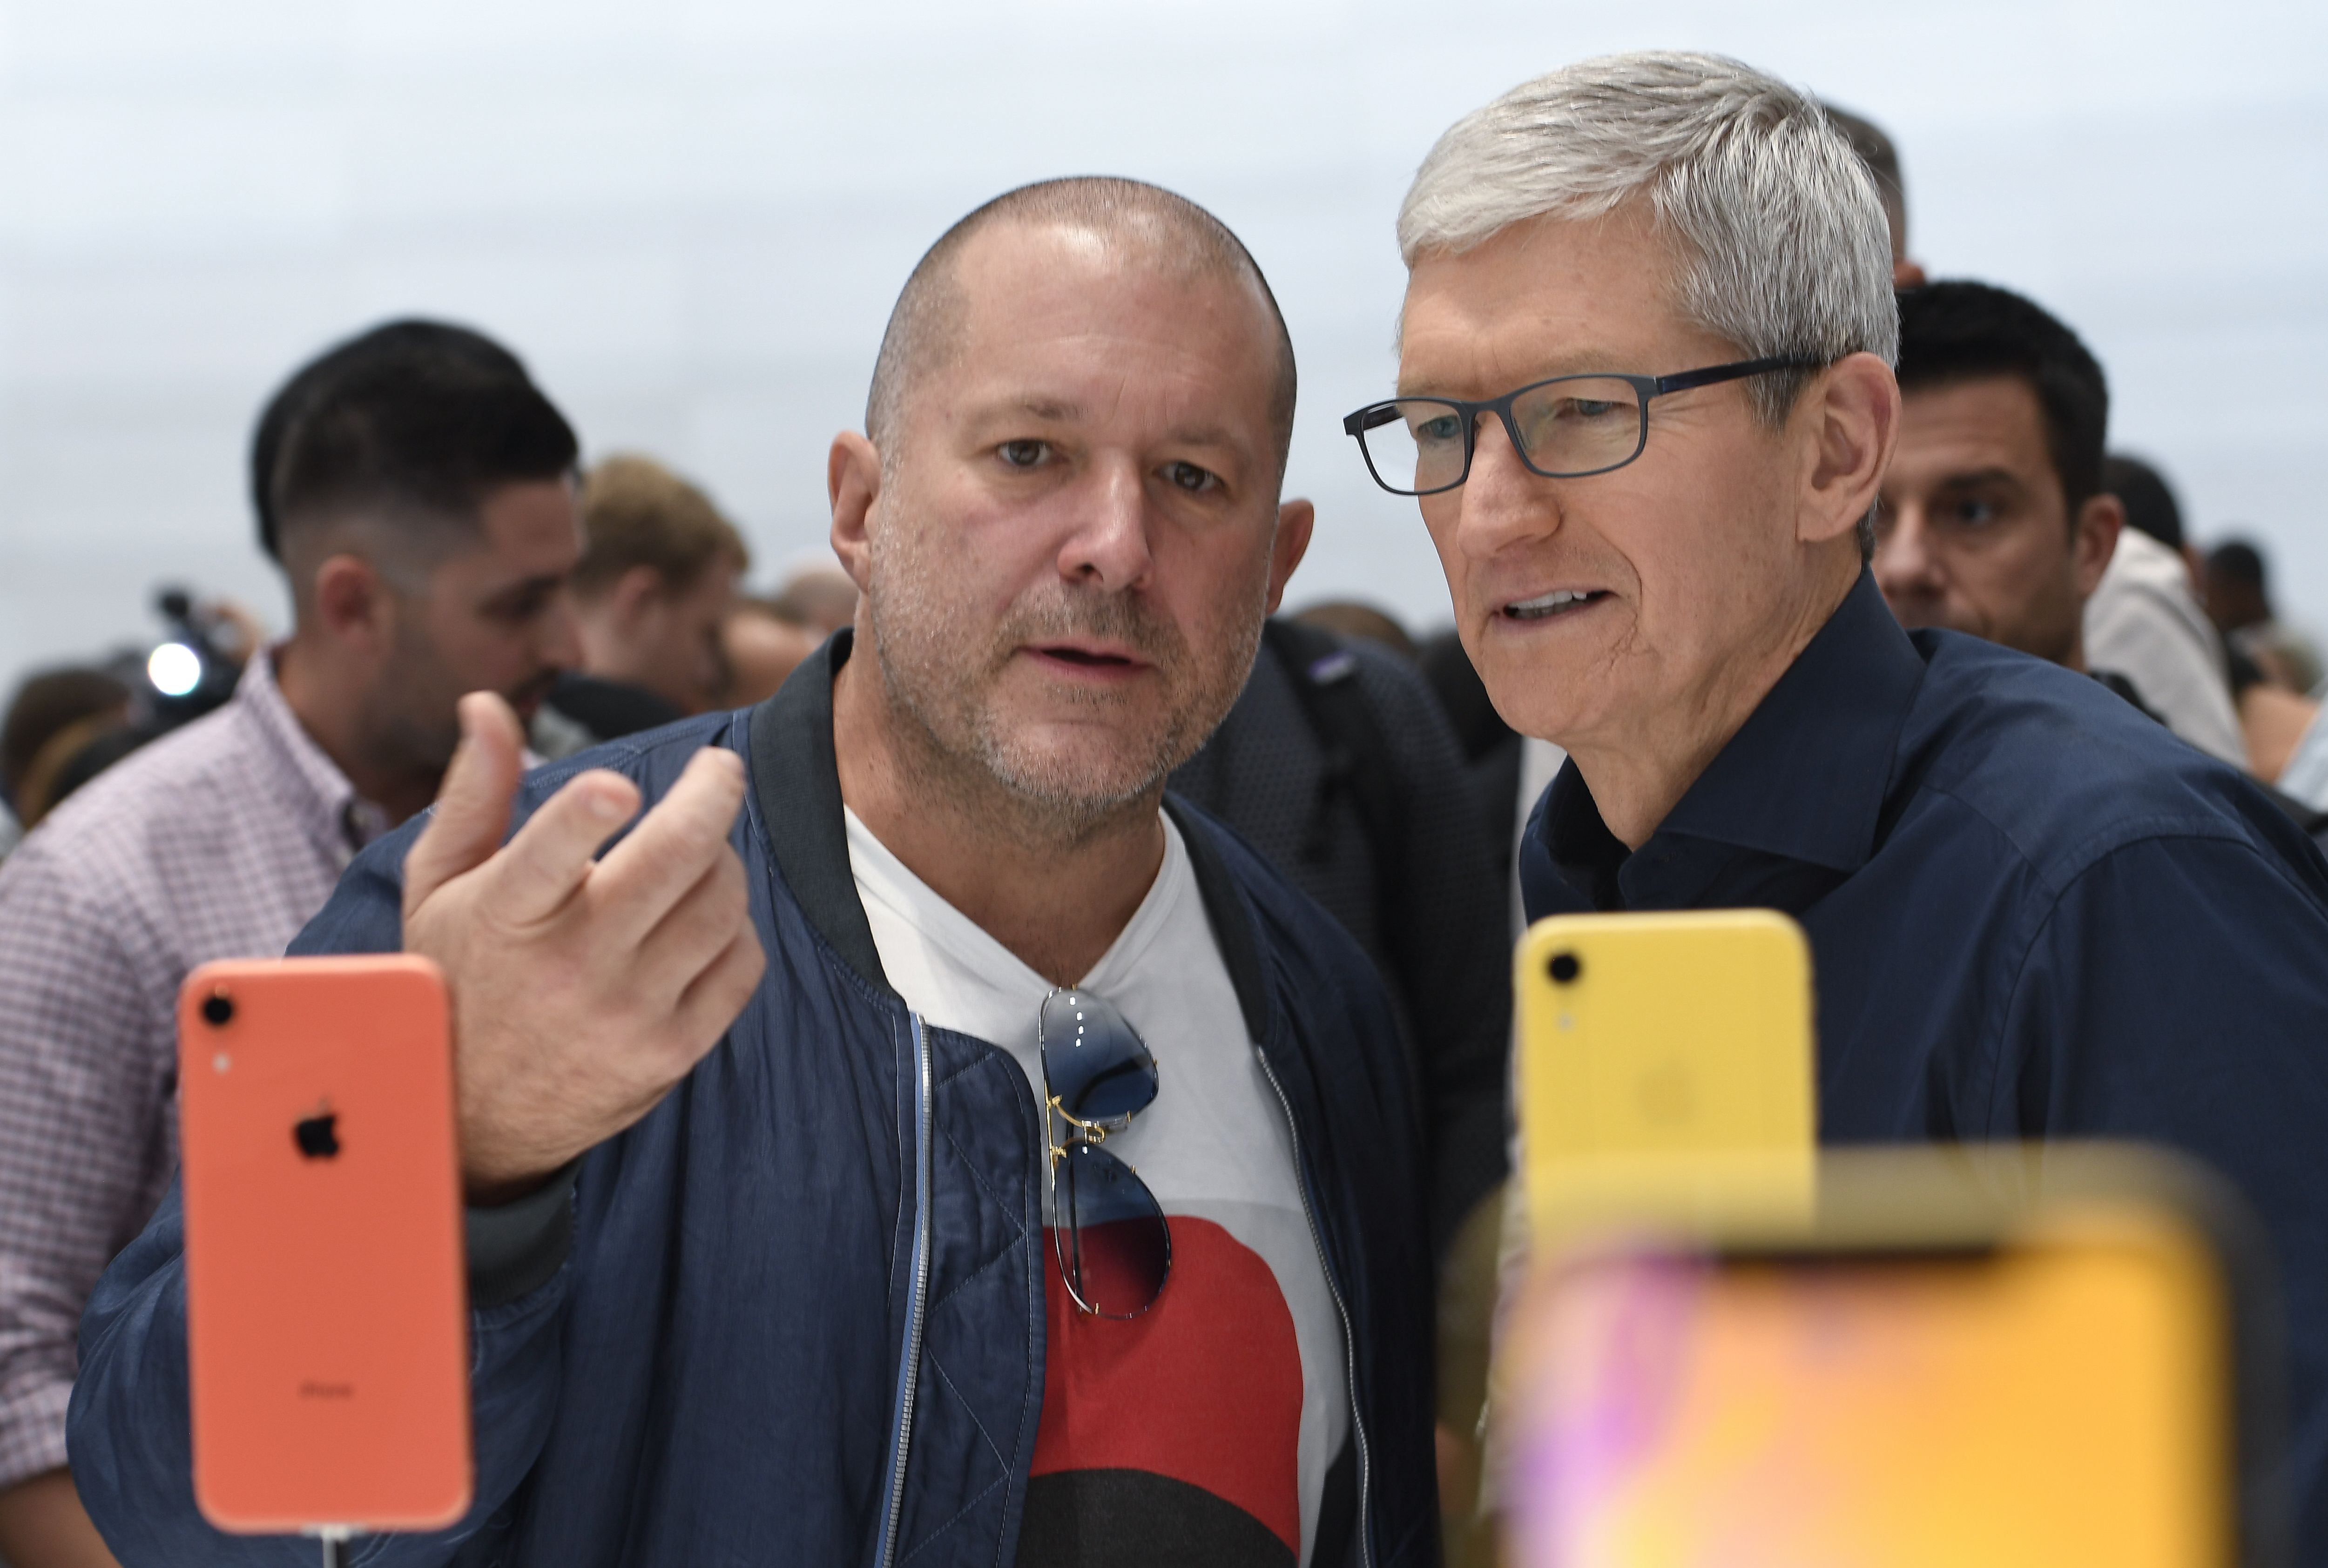 Apple chief design officer Jony Ive and Apple CEO Tim Cook inspect iPhone XR.